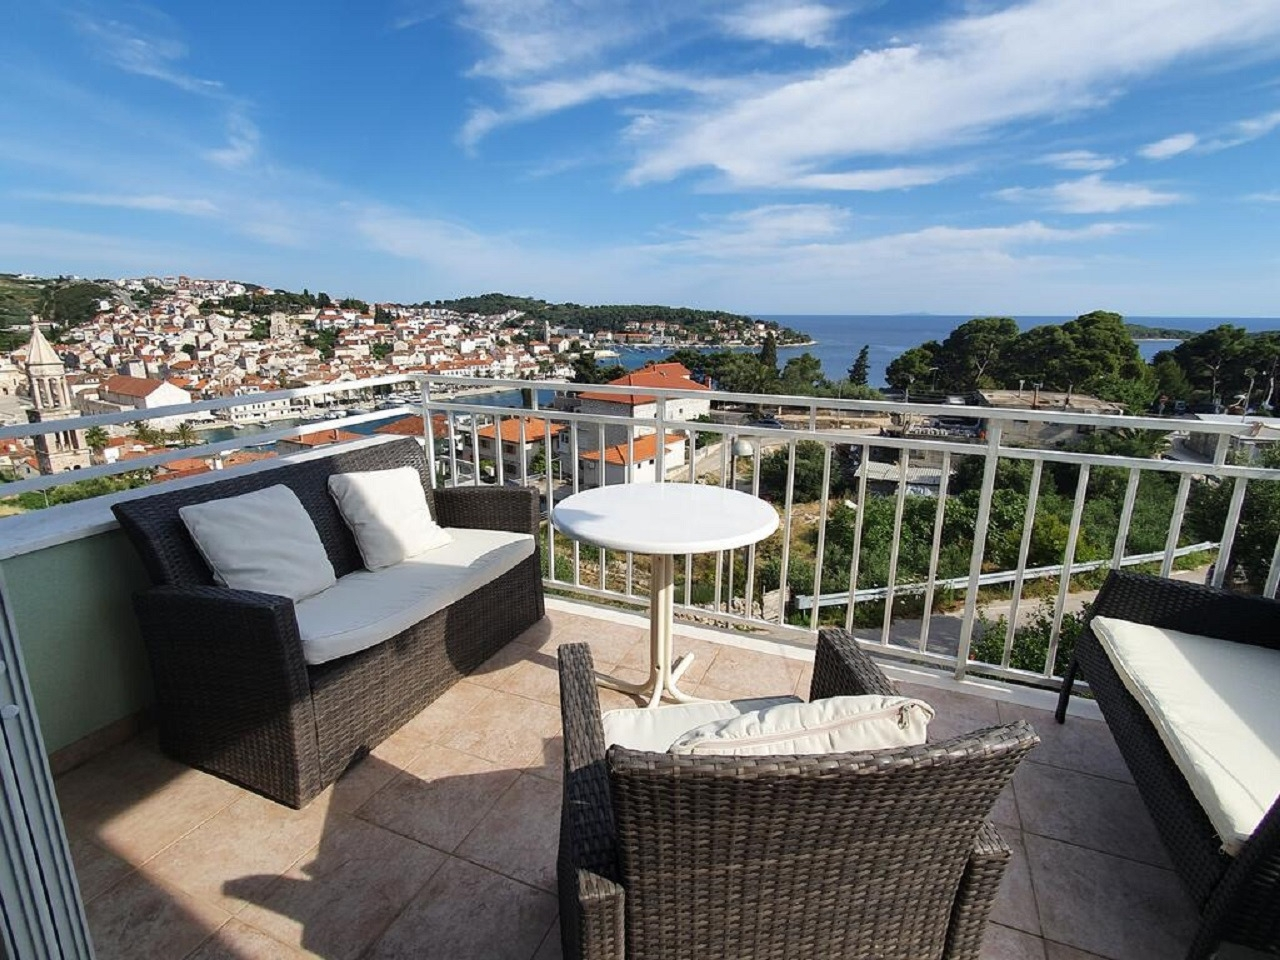 Apartments, Hvar, Island of Hvar - Apartments  Mar - beautiful panoramic view: